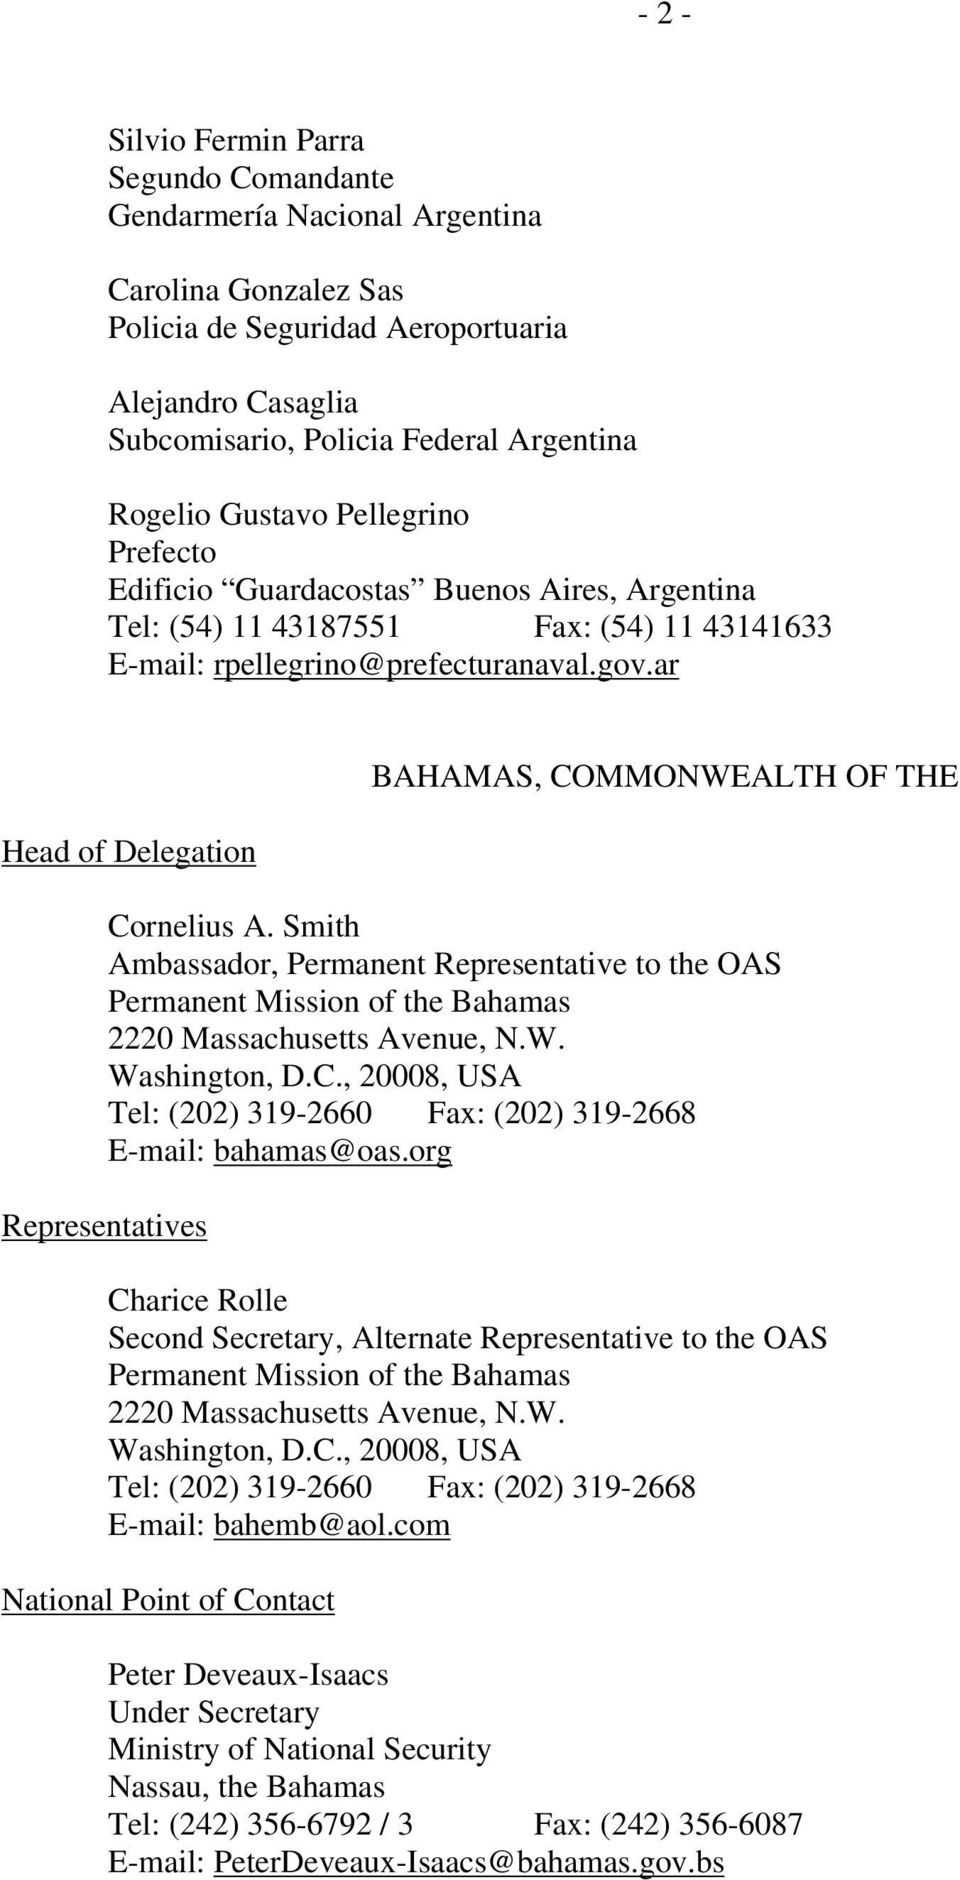 ar Head of Delegation BAHAMAS, COMMONWEALTH OF THE Cornelius A. Smith Ambassador, Permanent Representative to the OAS Permanent Mission of the Bahamas 2220 Massachusetts Avenue, N.W. Tel: (202) 319-2660 Fax: (202) 319-2668 E-mail: bahamas@oas.